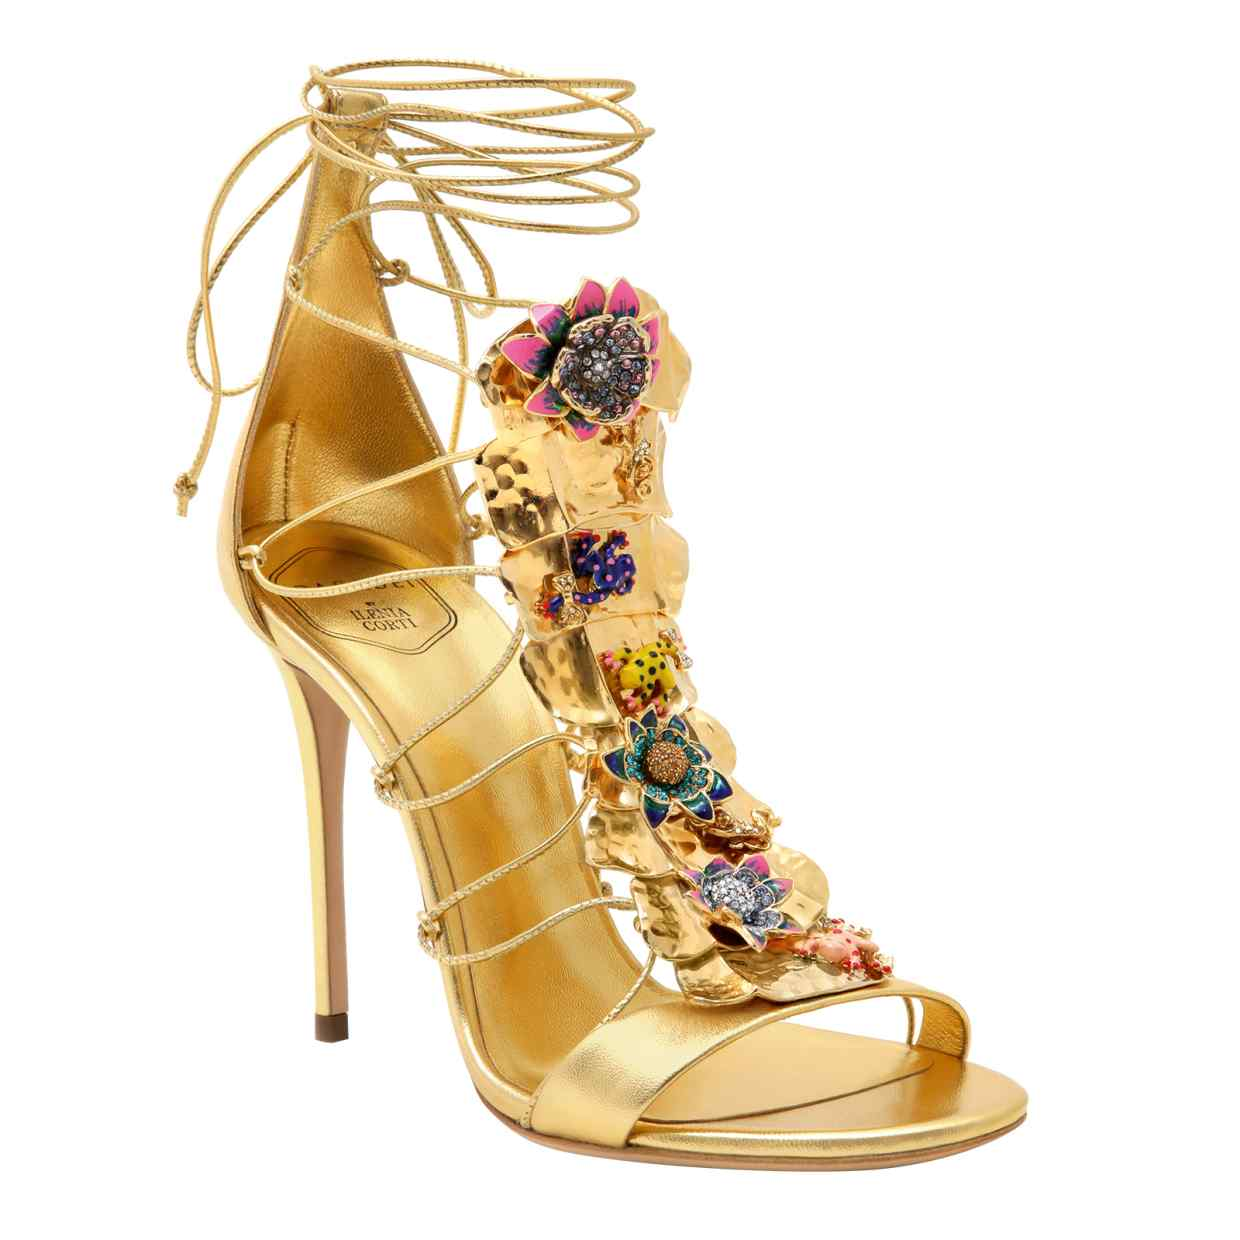 Casadei by Ilenia Corti metal plaque leather sandals, £1,800 | Image: Omer Knaz